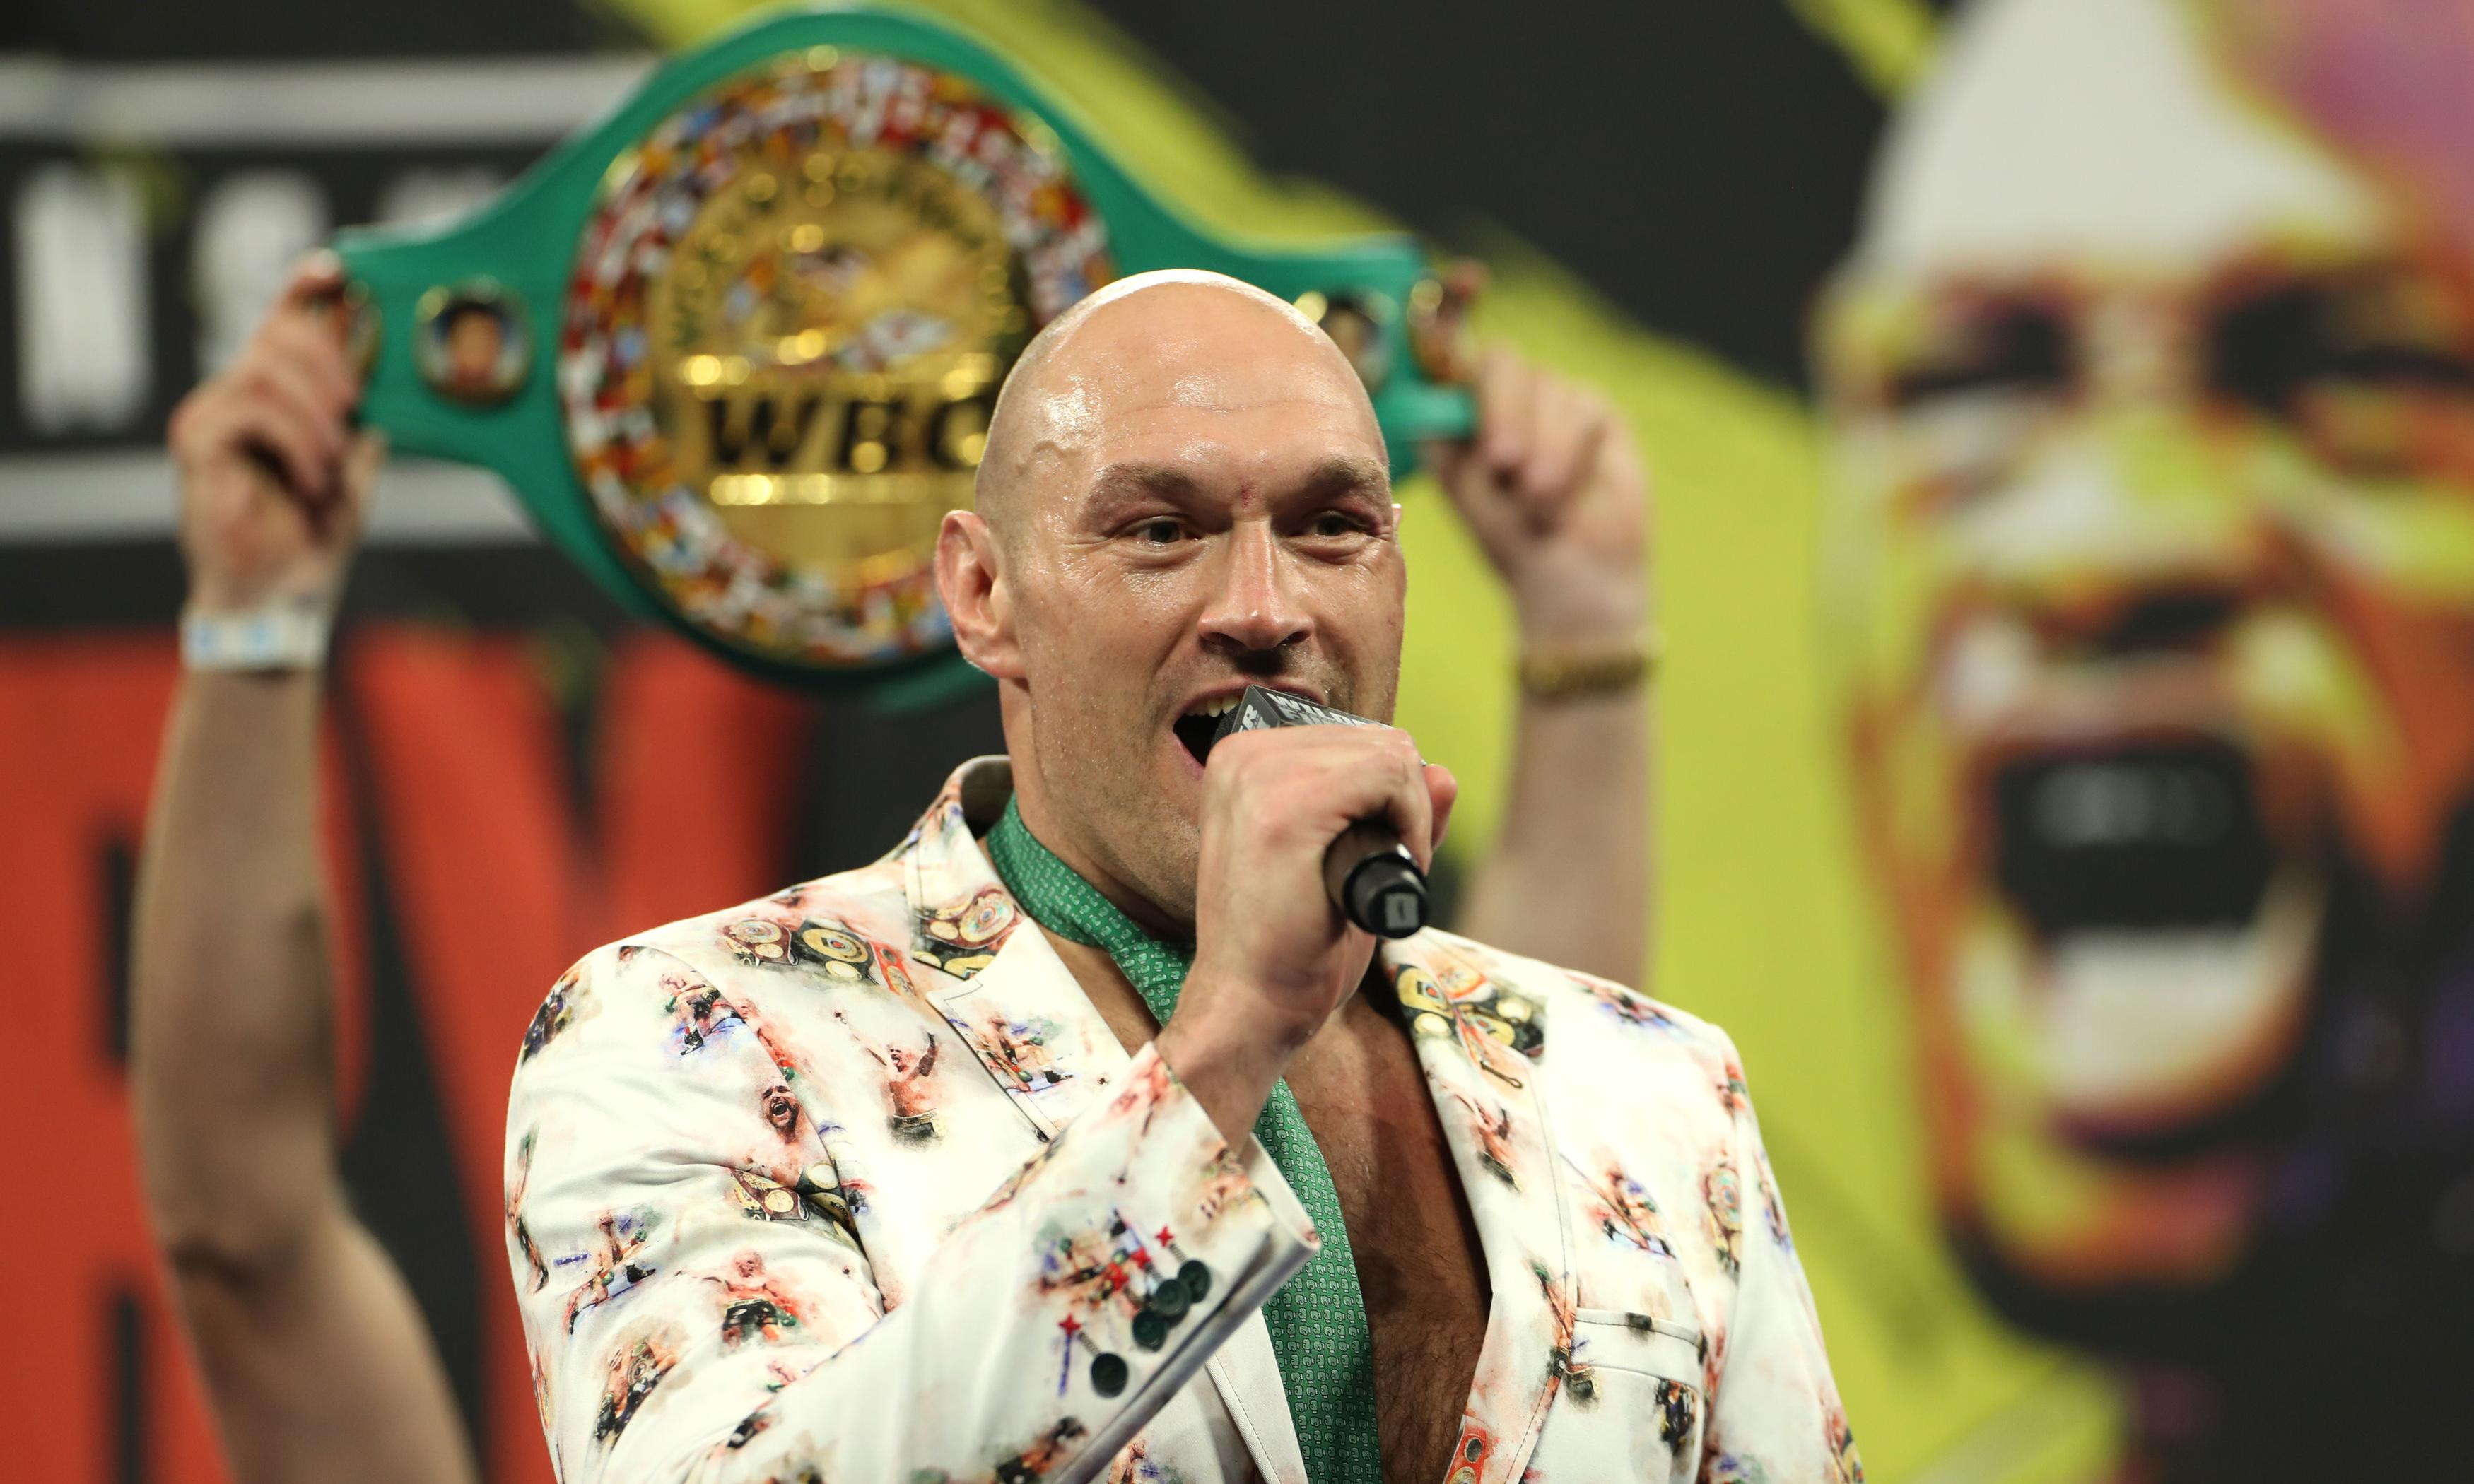 Tyson Fury: from the lowest of lows to the top of the world